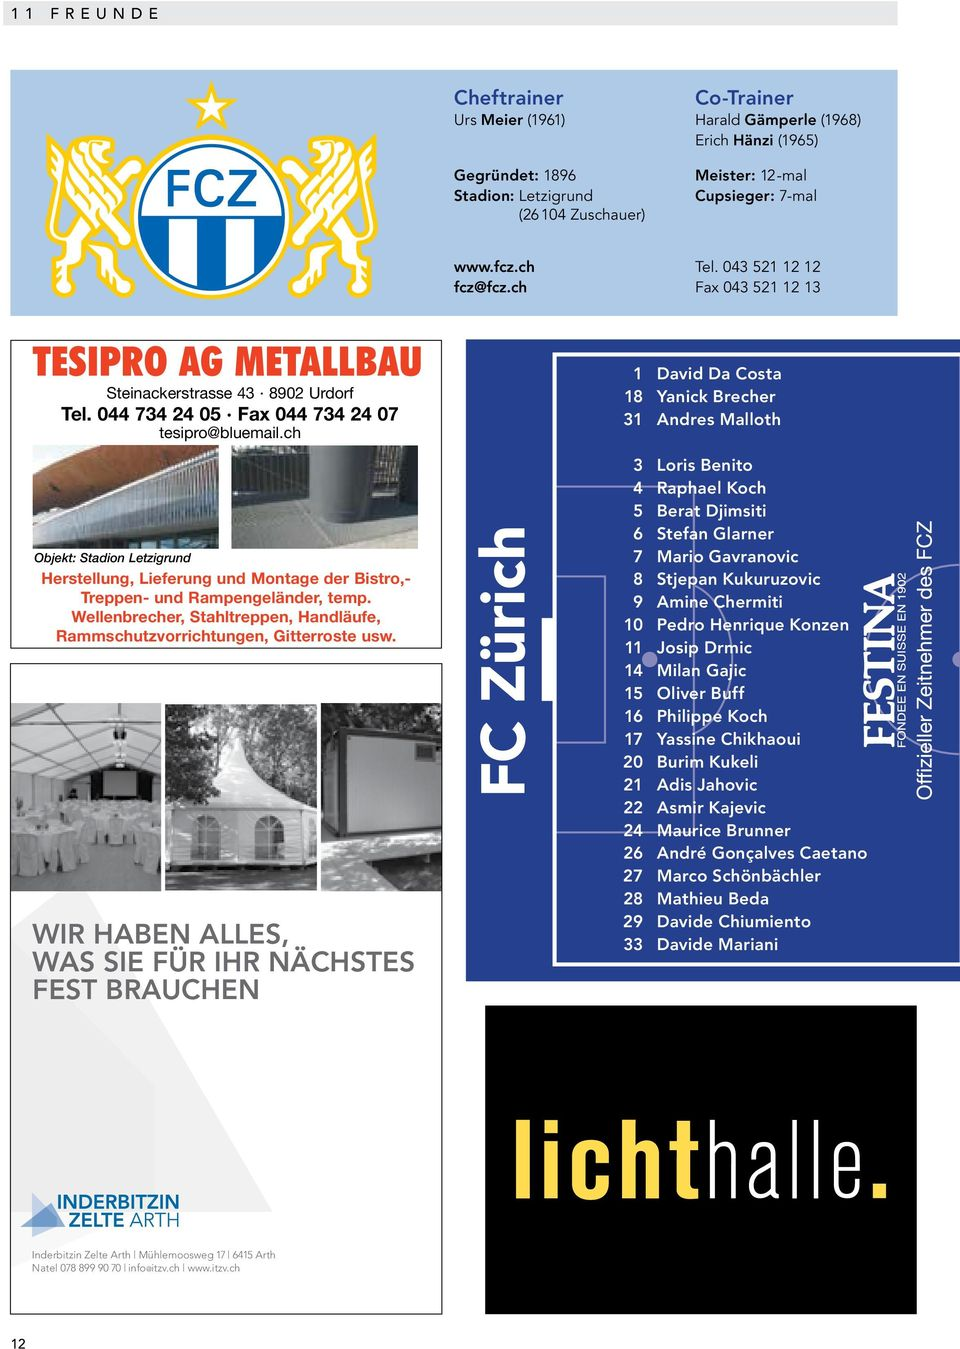 ch Fax 043 521 12 13 12 TESIPRO AG METALLBAU Steinackerstrasse 43 8902 Urdorf Tel. 044 734 24 05 Fax 044 734 24 07 tesipro@bluemail.